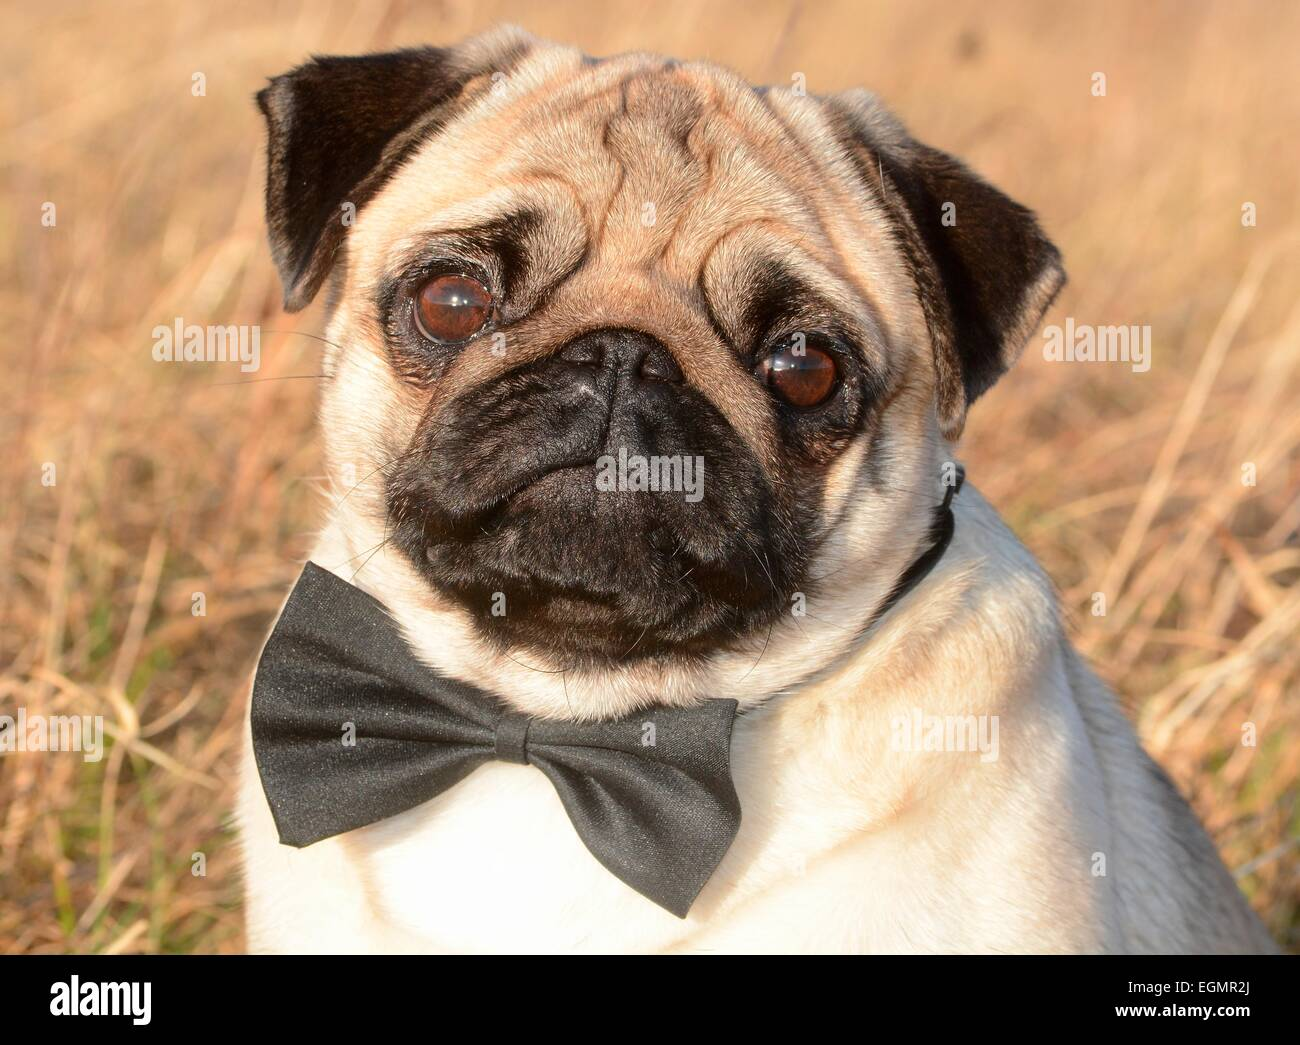 Pug with bow tie among dry grass, Sweden - Stock Image